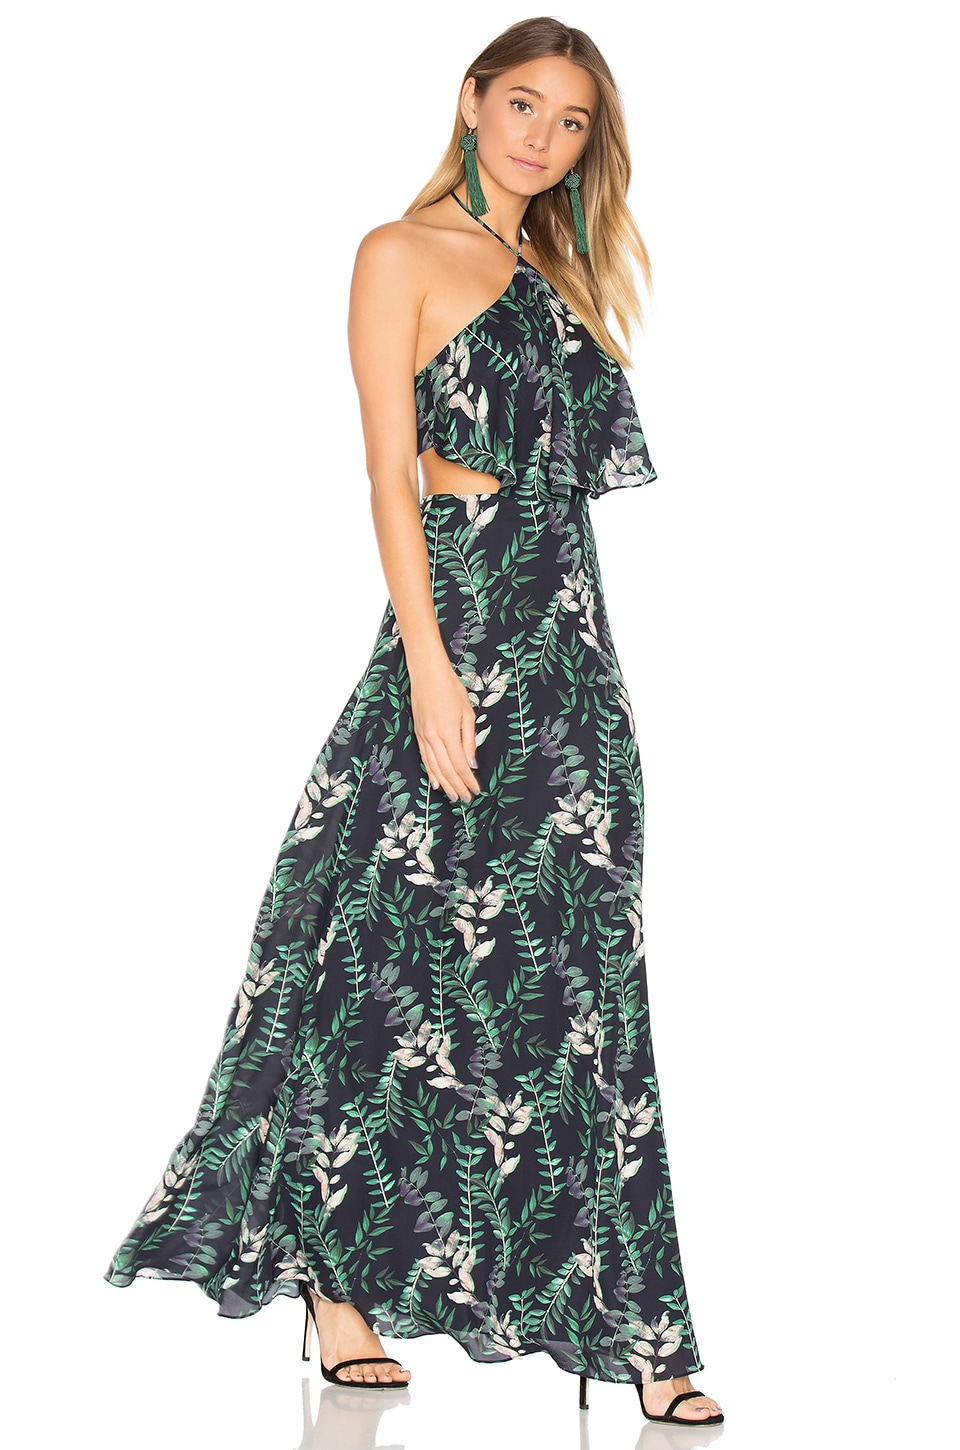 House of Harlow 1960 x REVOLVE Zoe Maxi in Falling Leaves